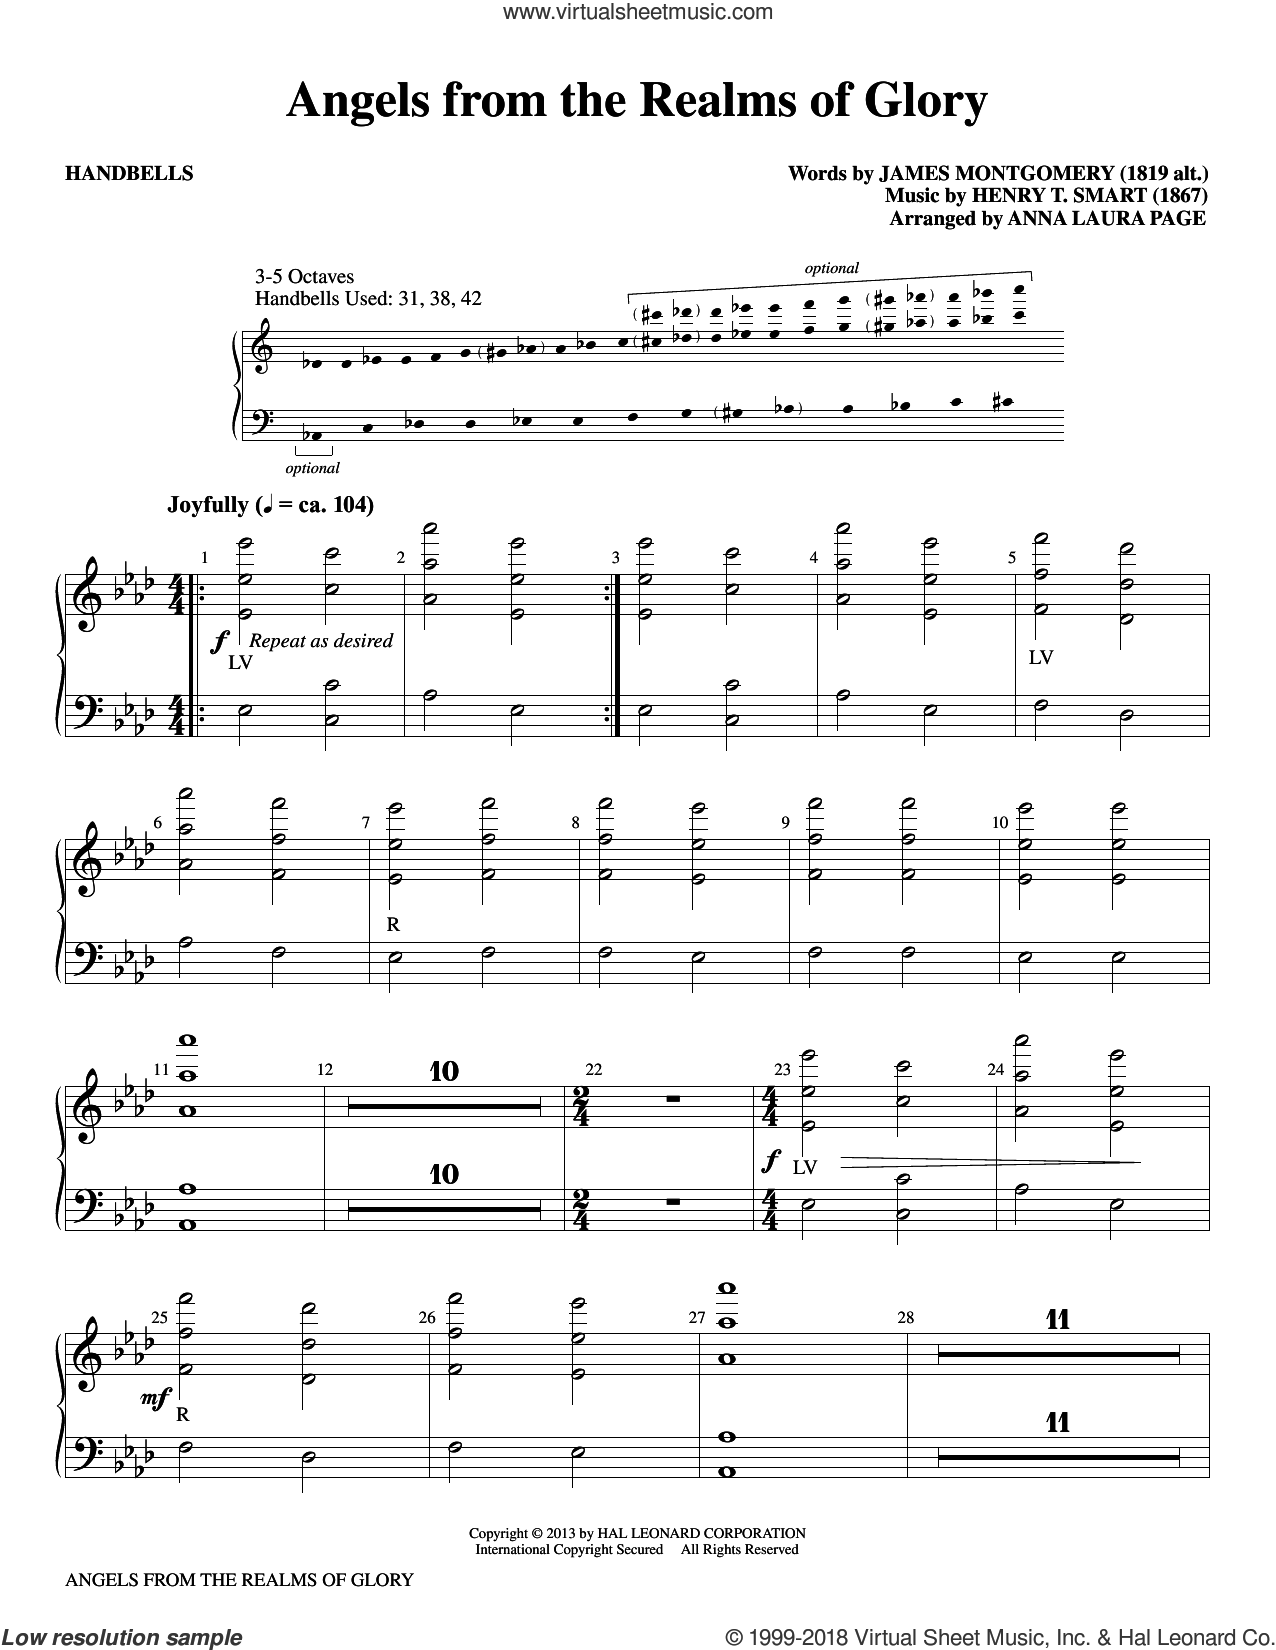 Angels From The Realms Of Glory sheet music for percussions by Anna Laura Page